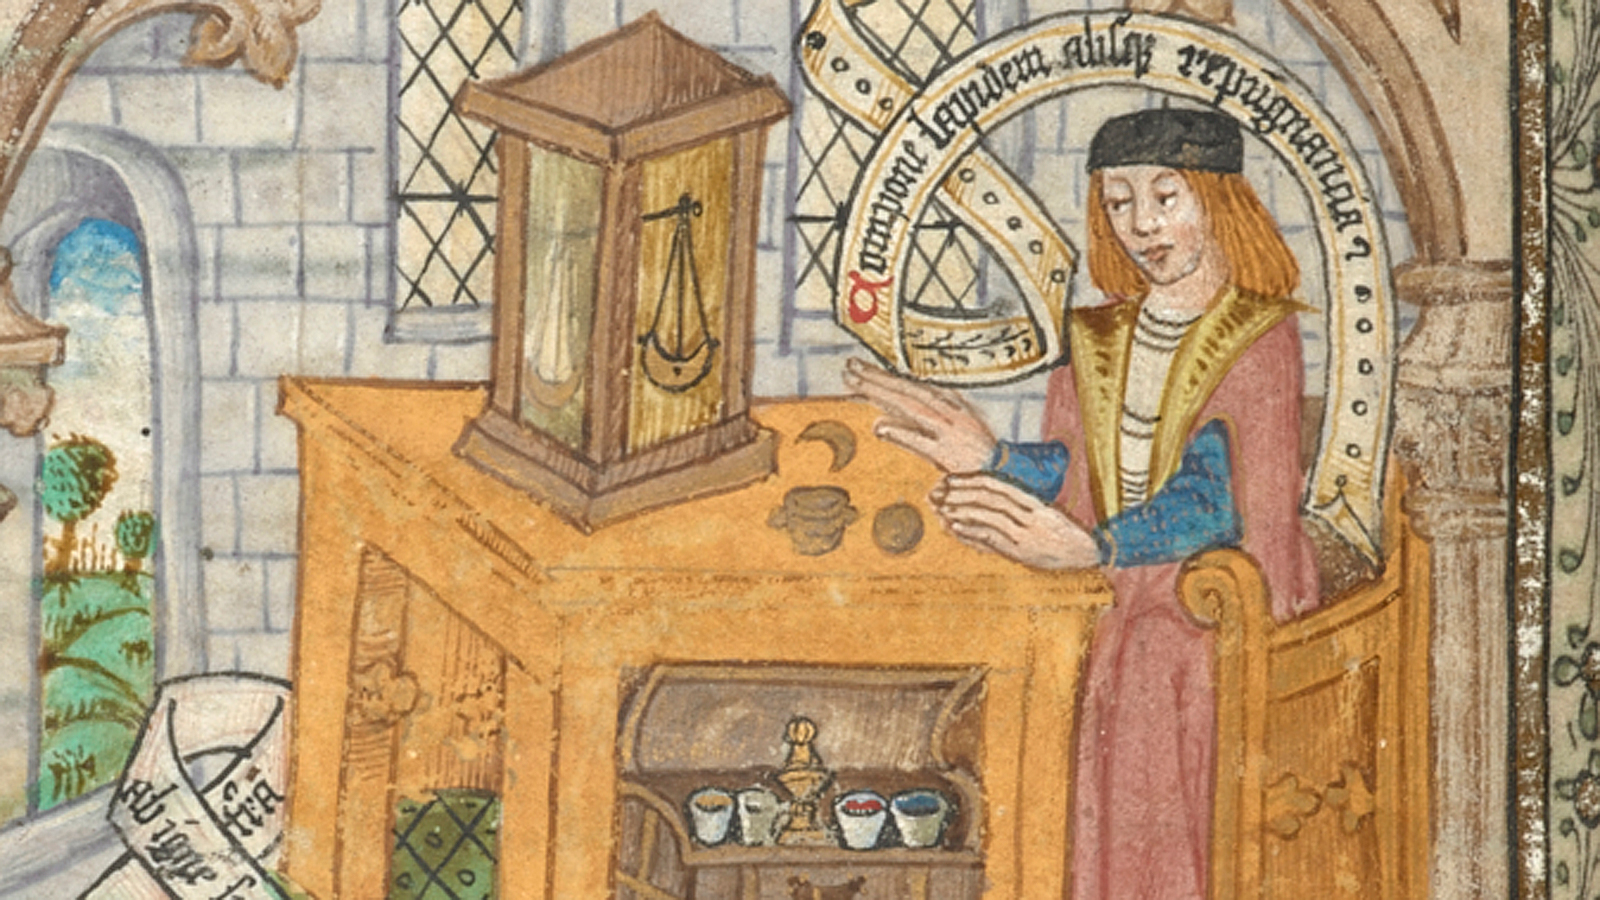 An introduction to The Alchemist: the artist and the con